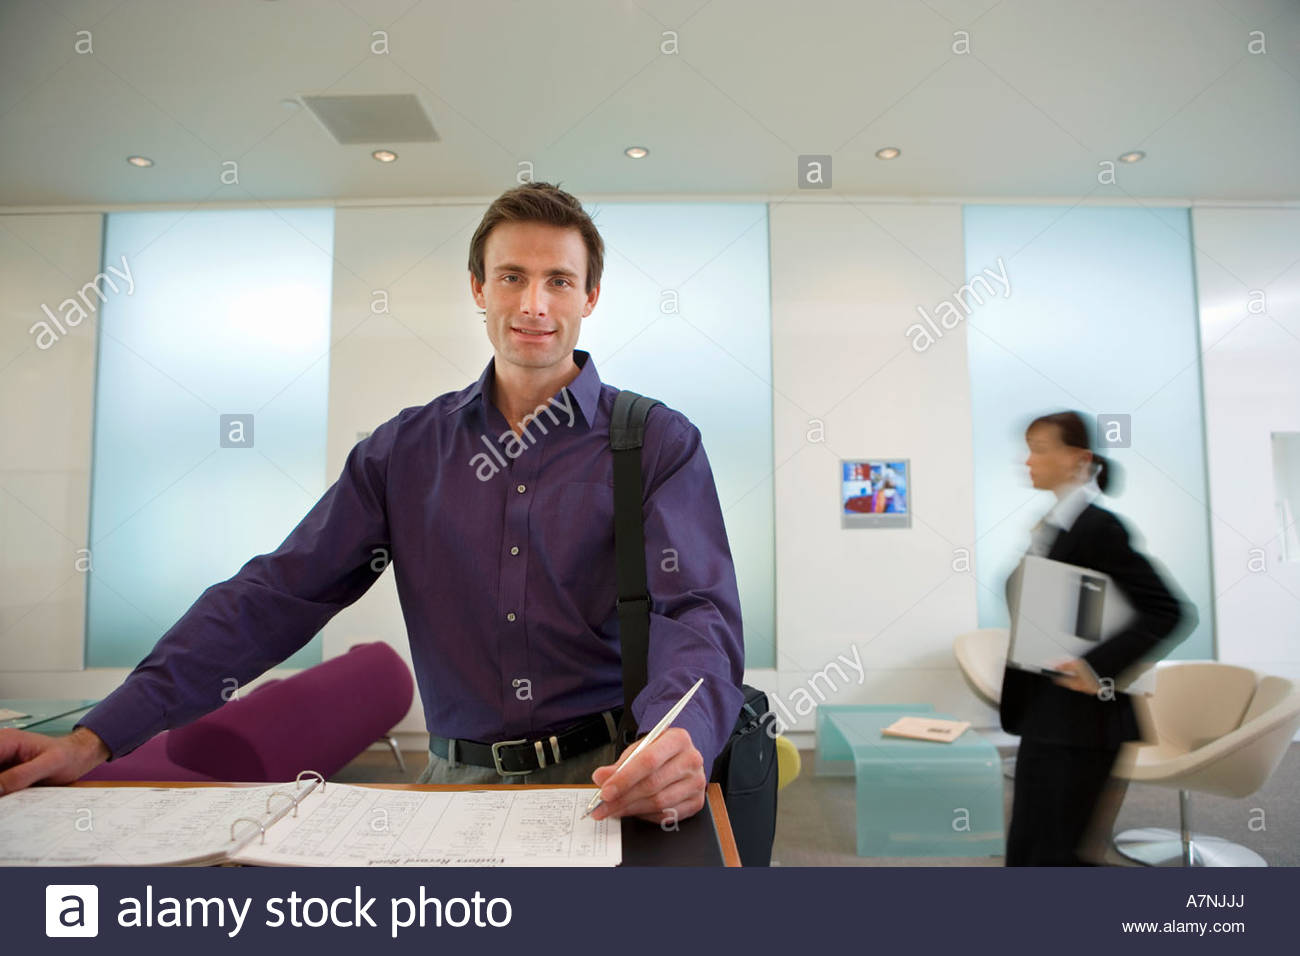 Businessman signing guestbook in reception area smiling portrait businesswoman in background focus on foreground - Stock Image